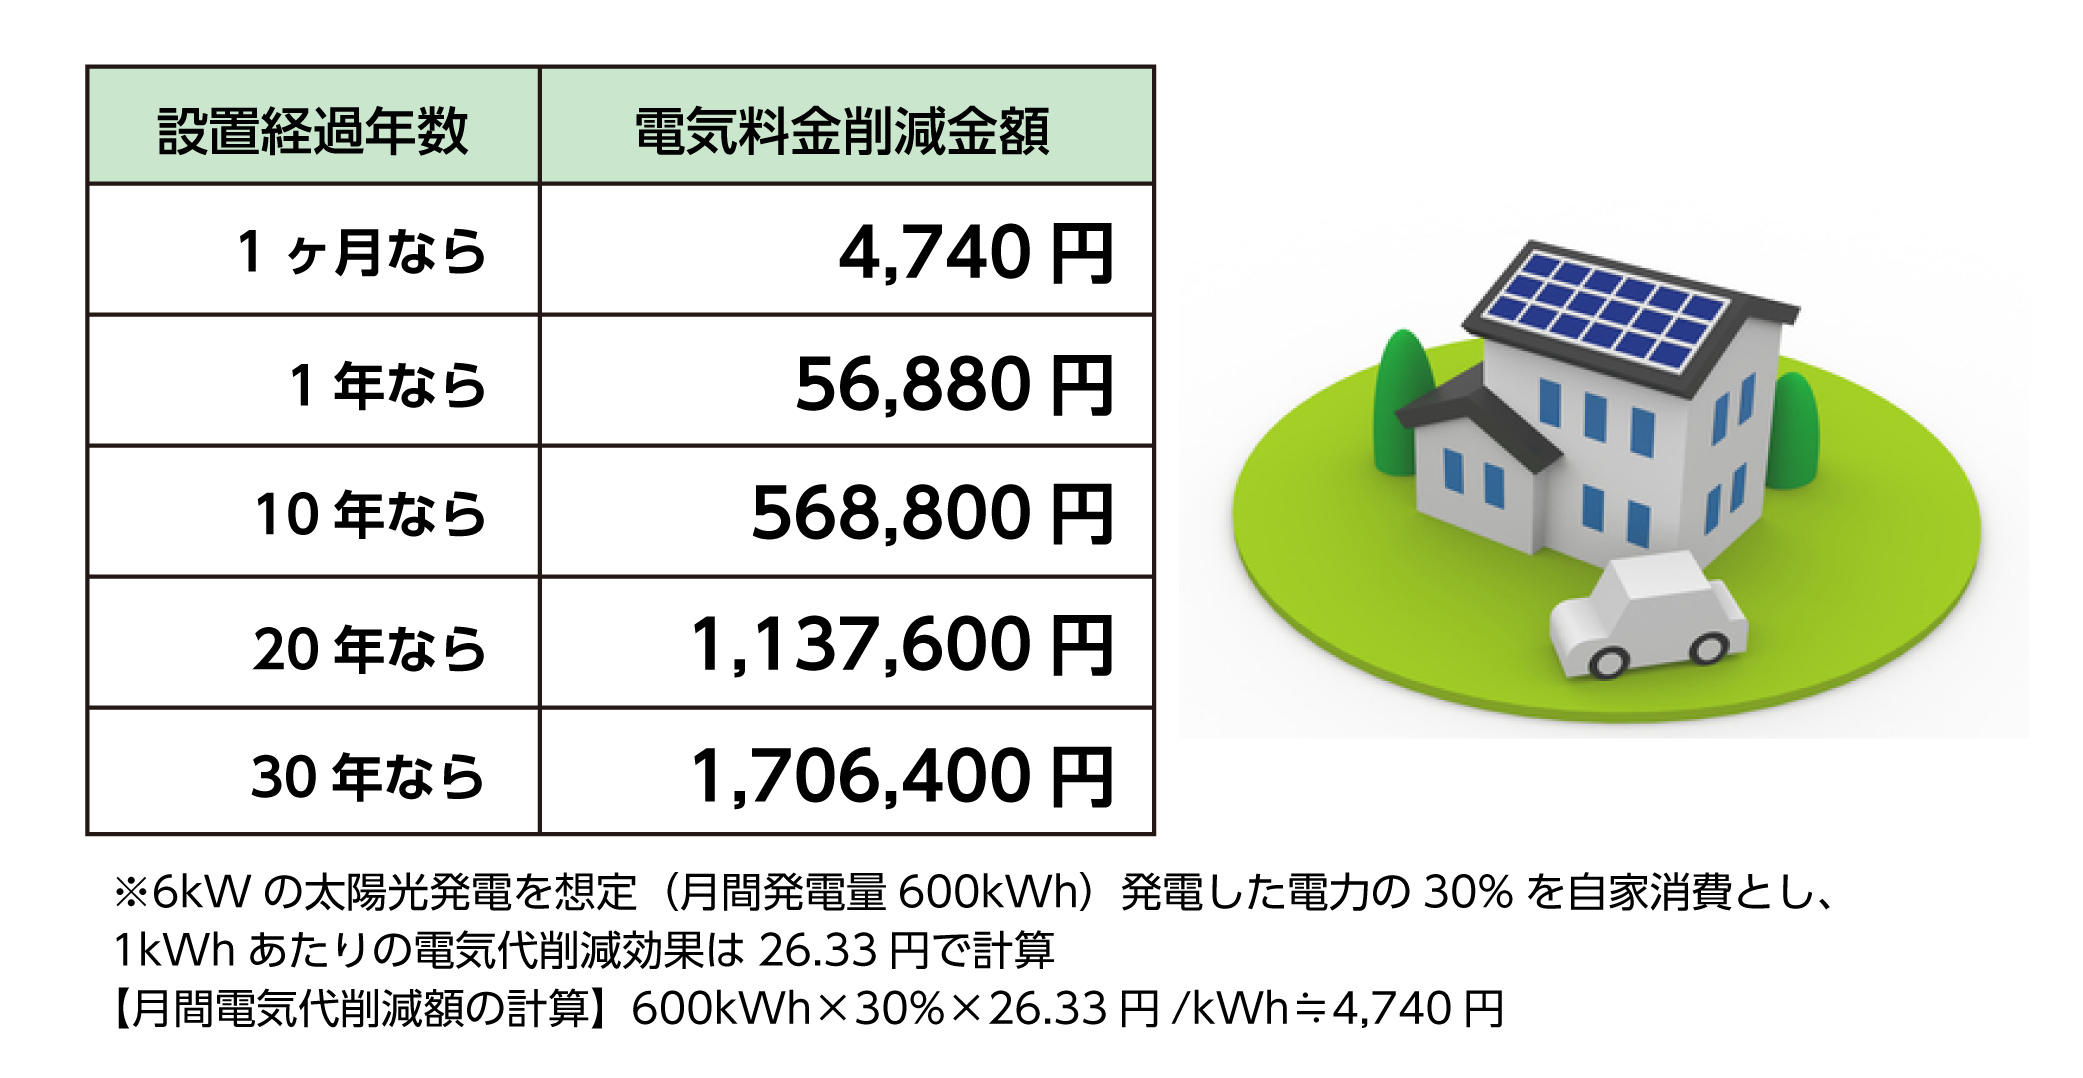 Electricity bill reduction